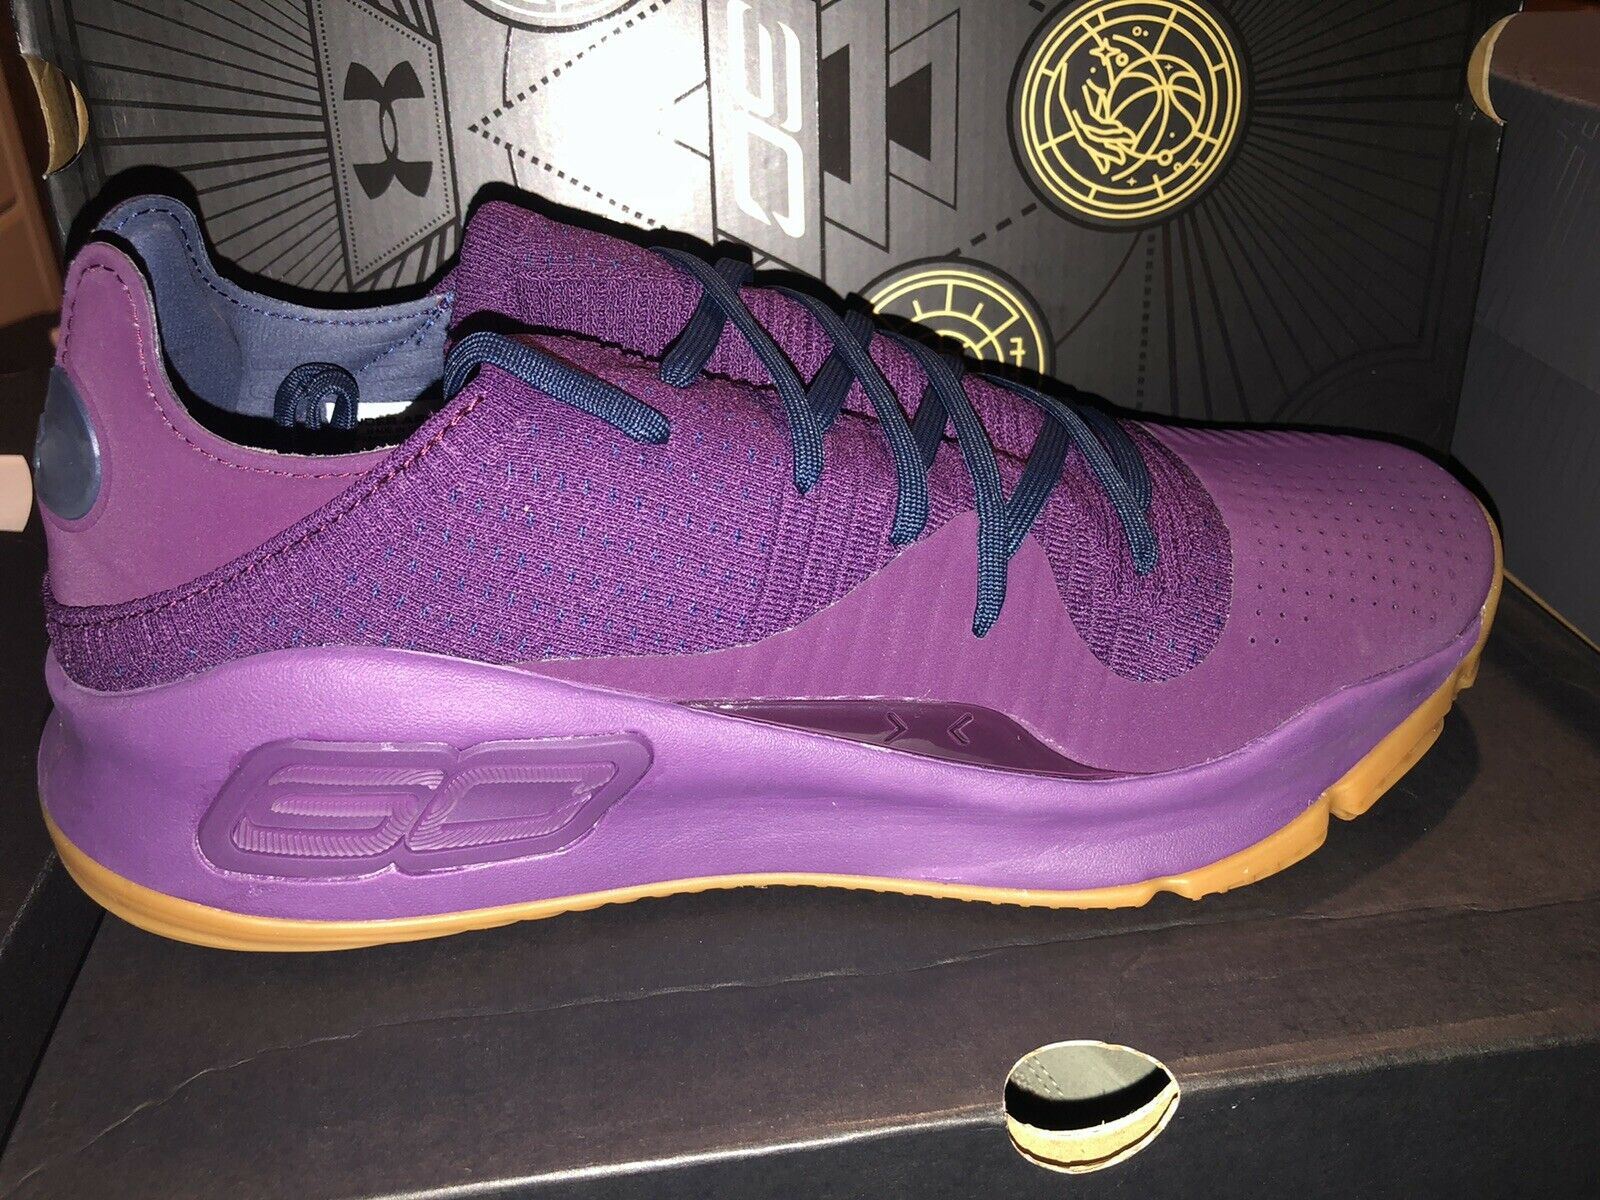 NIB Under Armour Curry 4 Low Men Purple Basketball Shoes Size 12.5 Free Shipping